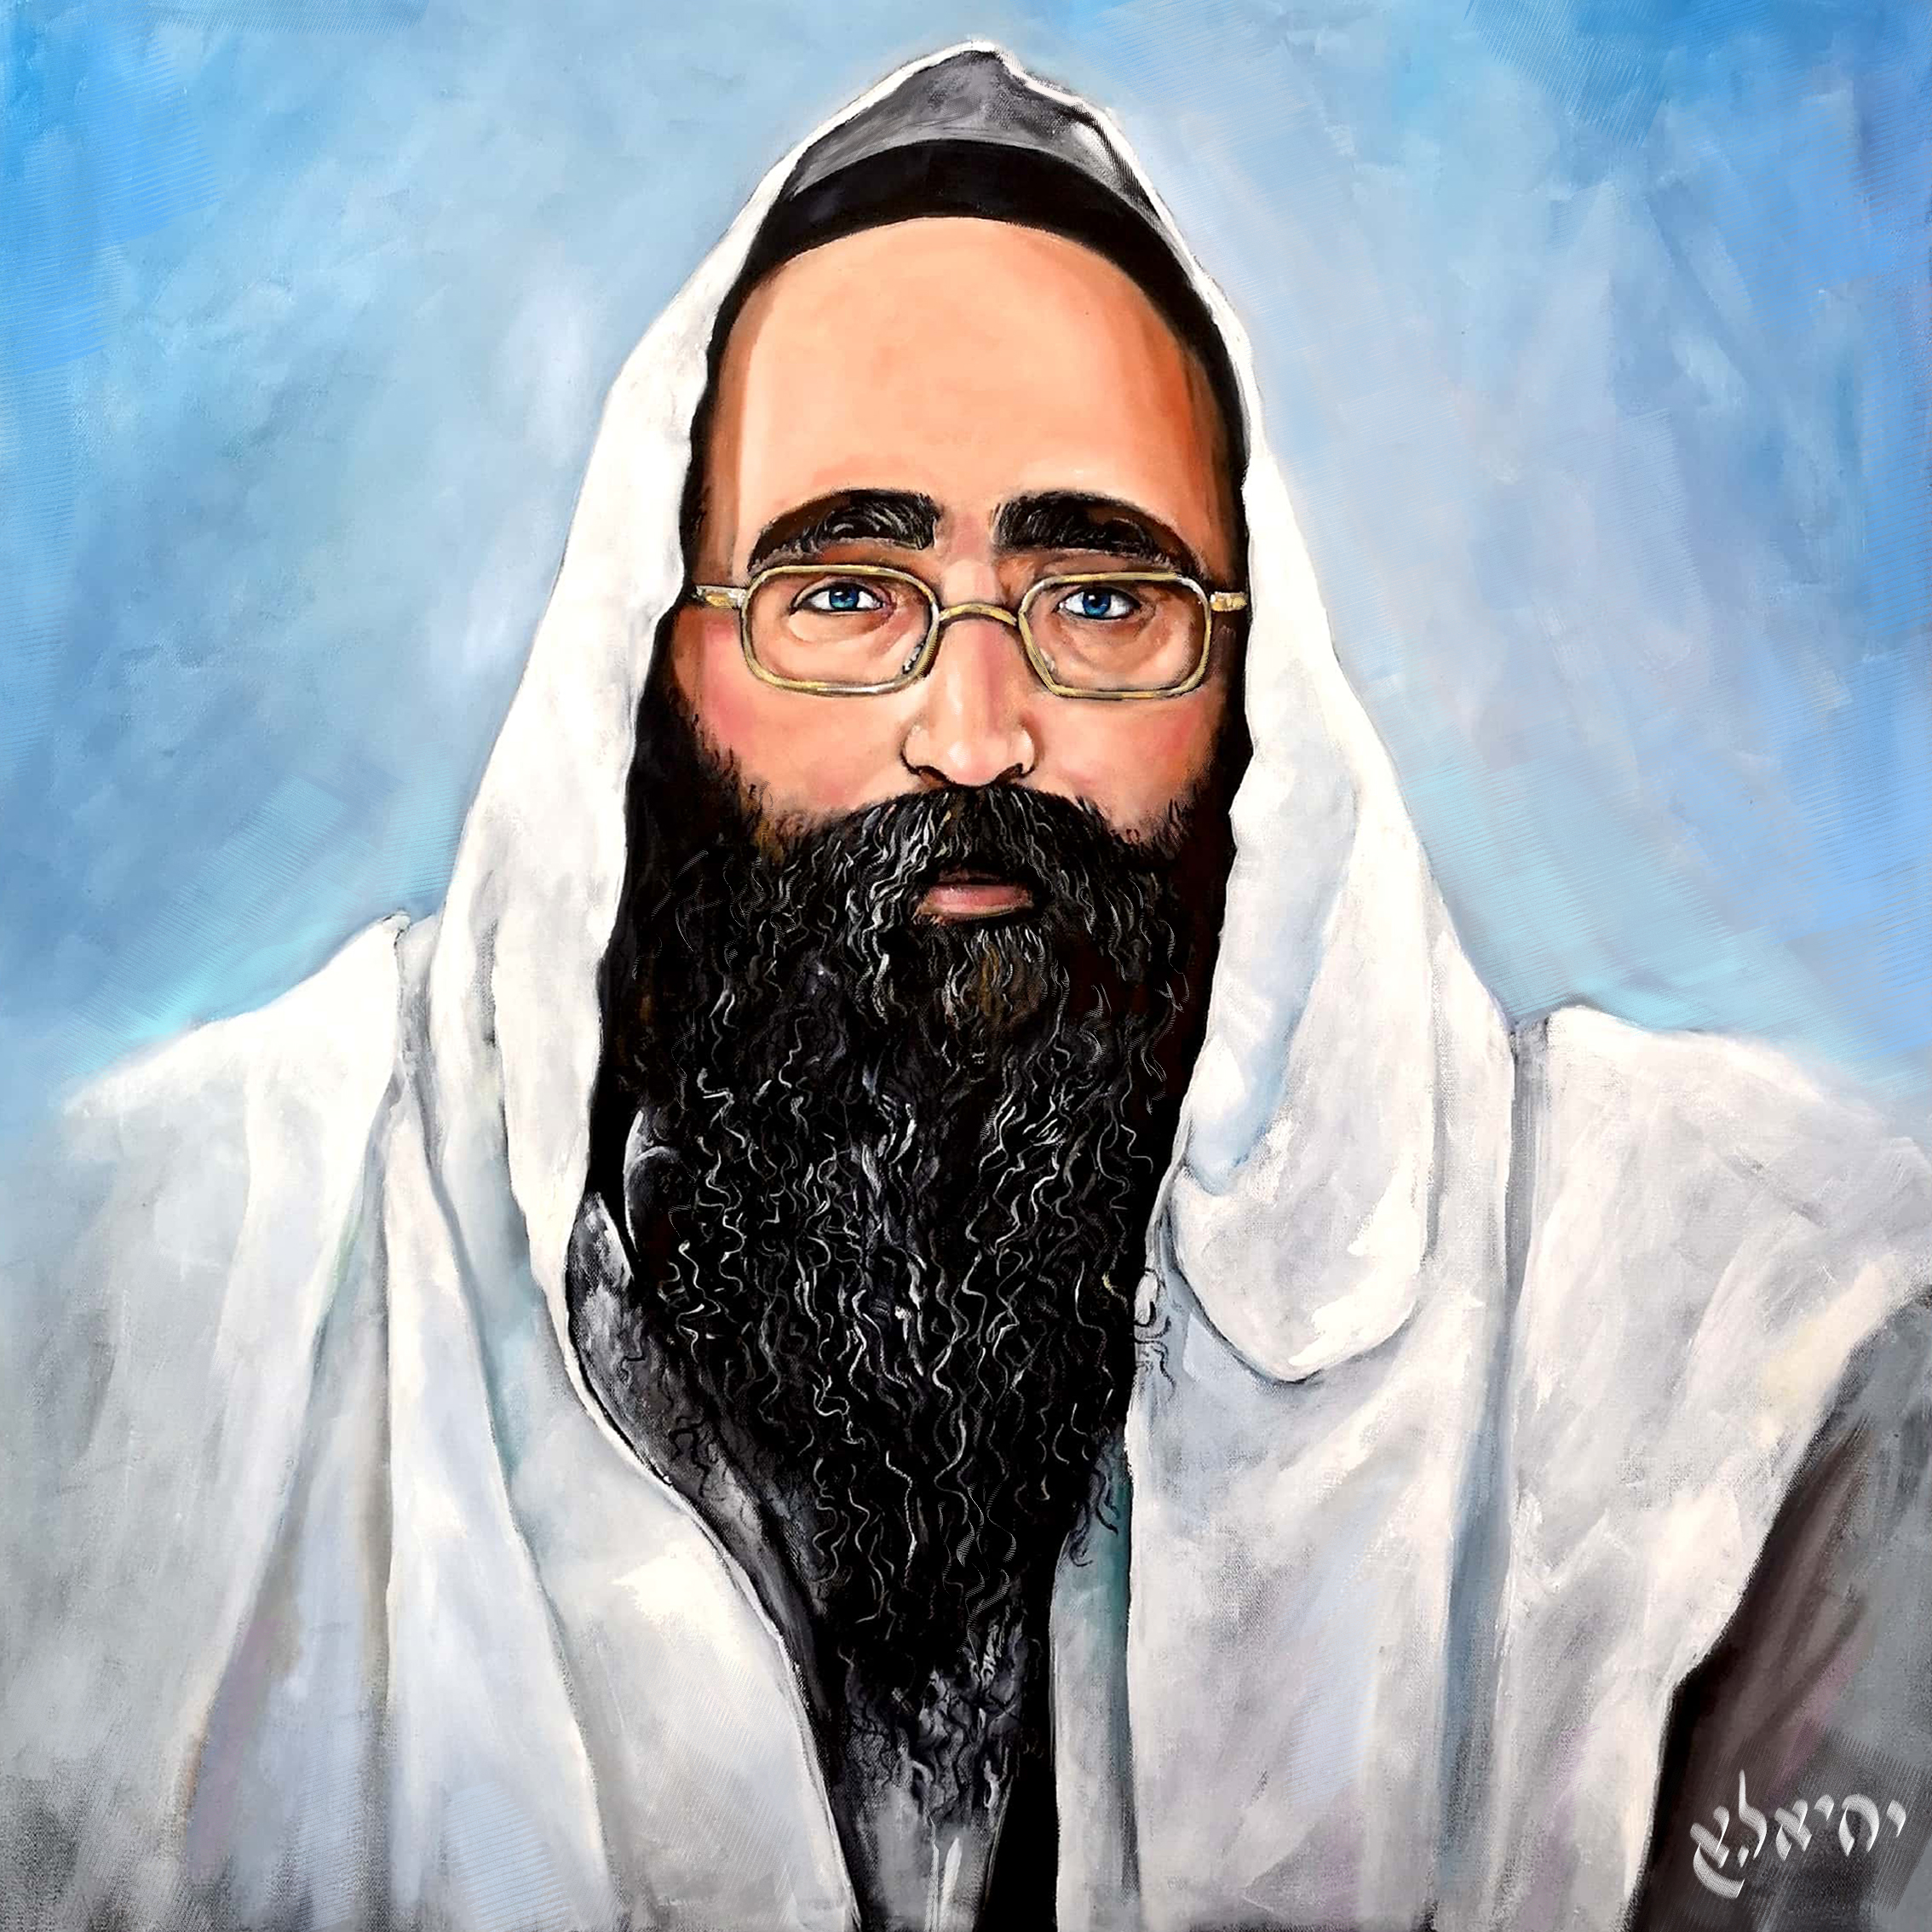 RABBI YCHAYAOU